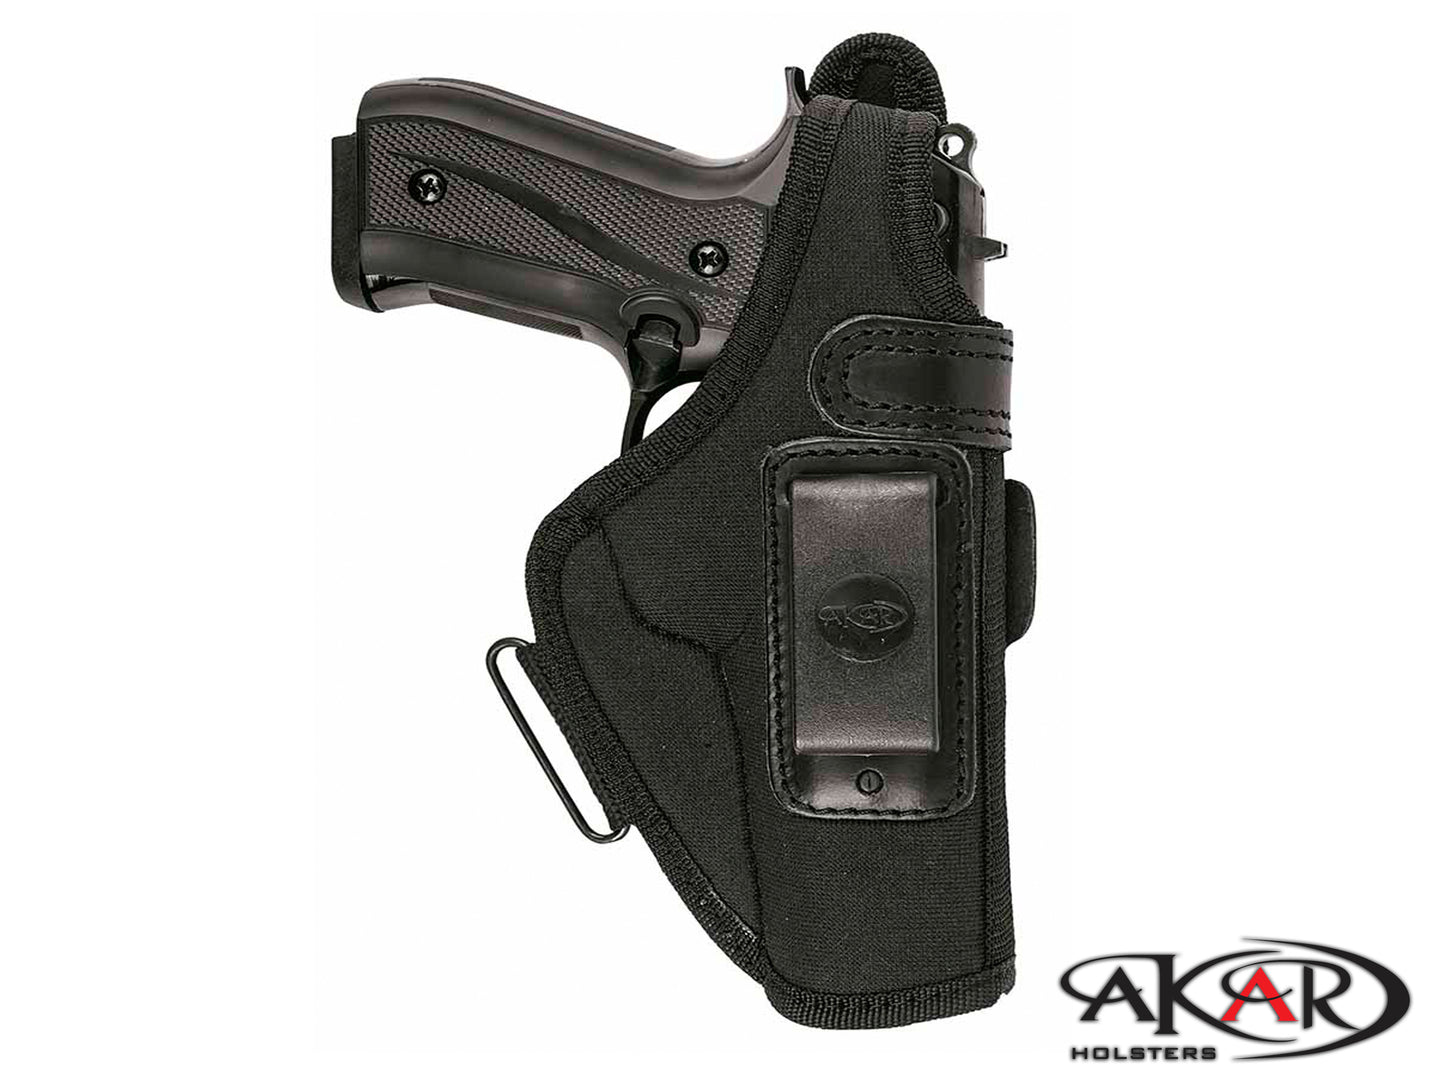 Akar Black Nylon Special Belt  IWB/ITP Holster W/ Steel Clip and thumbrake